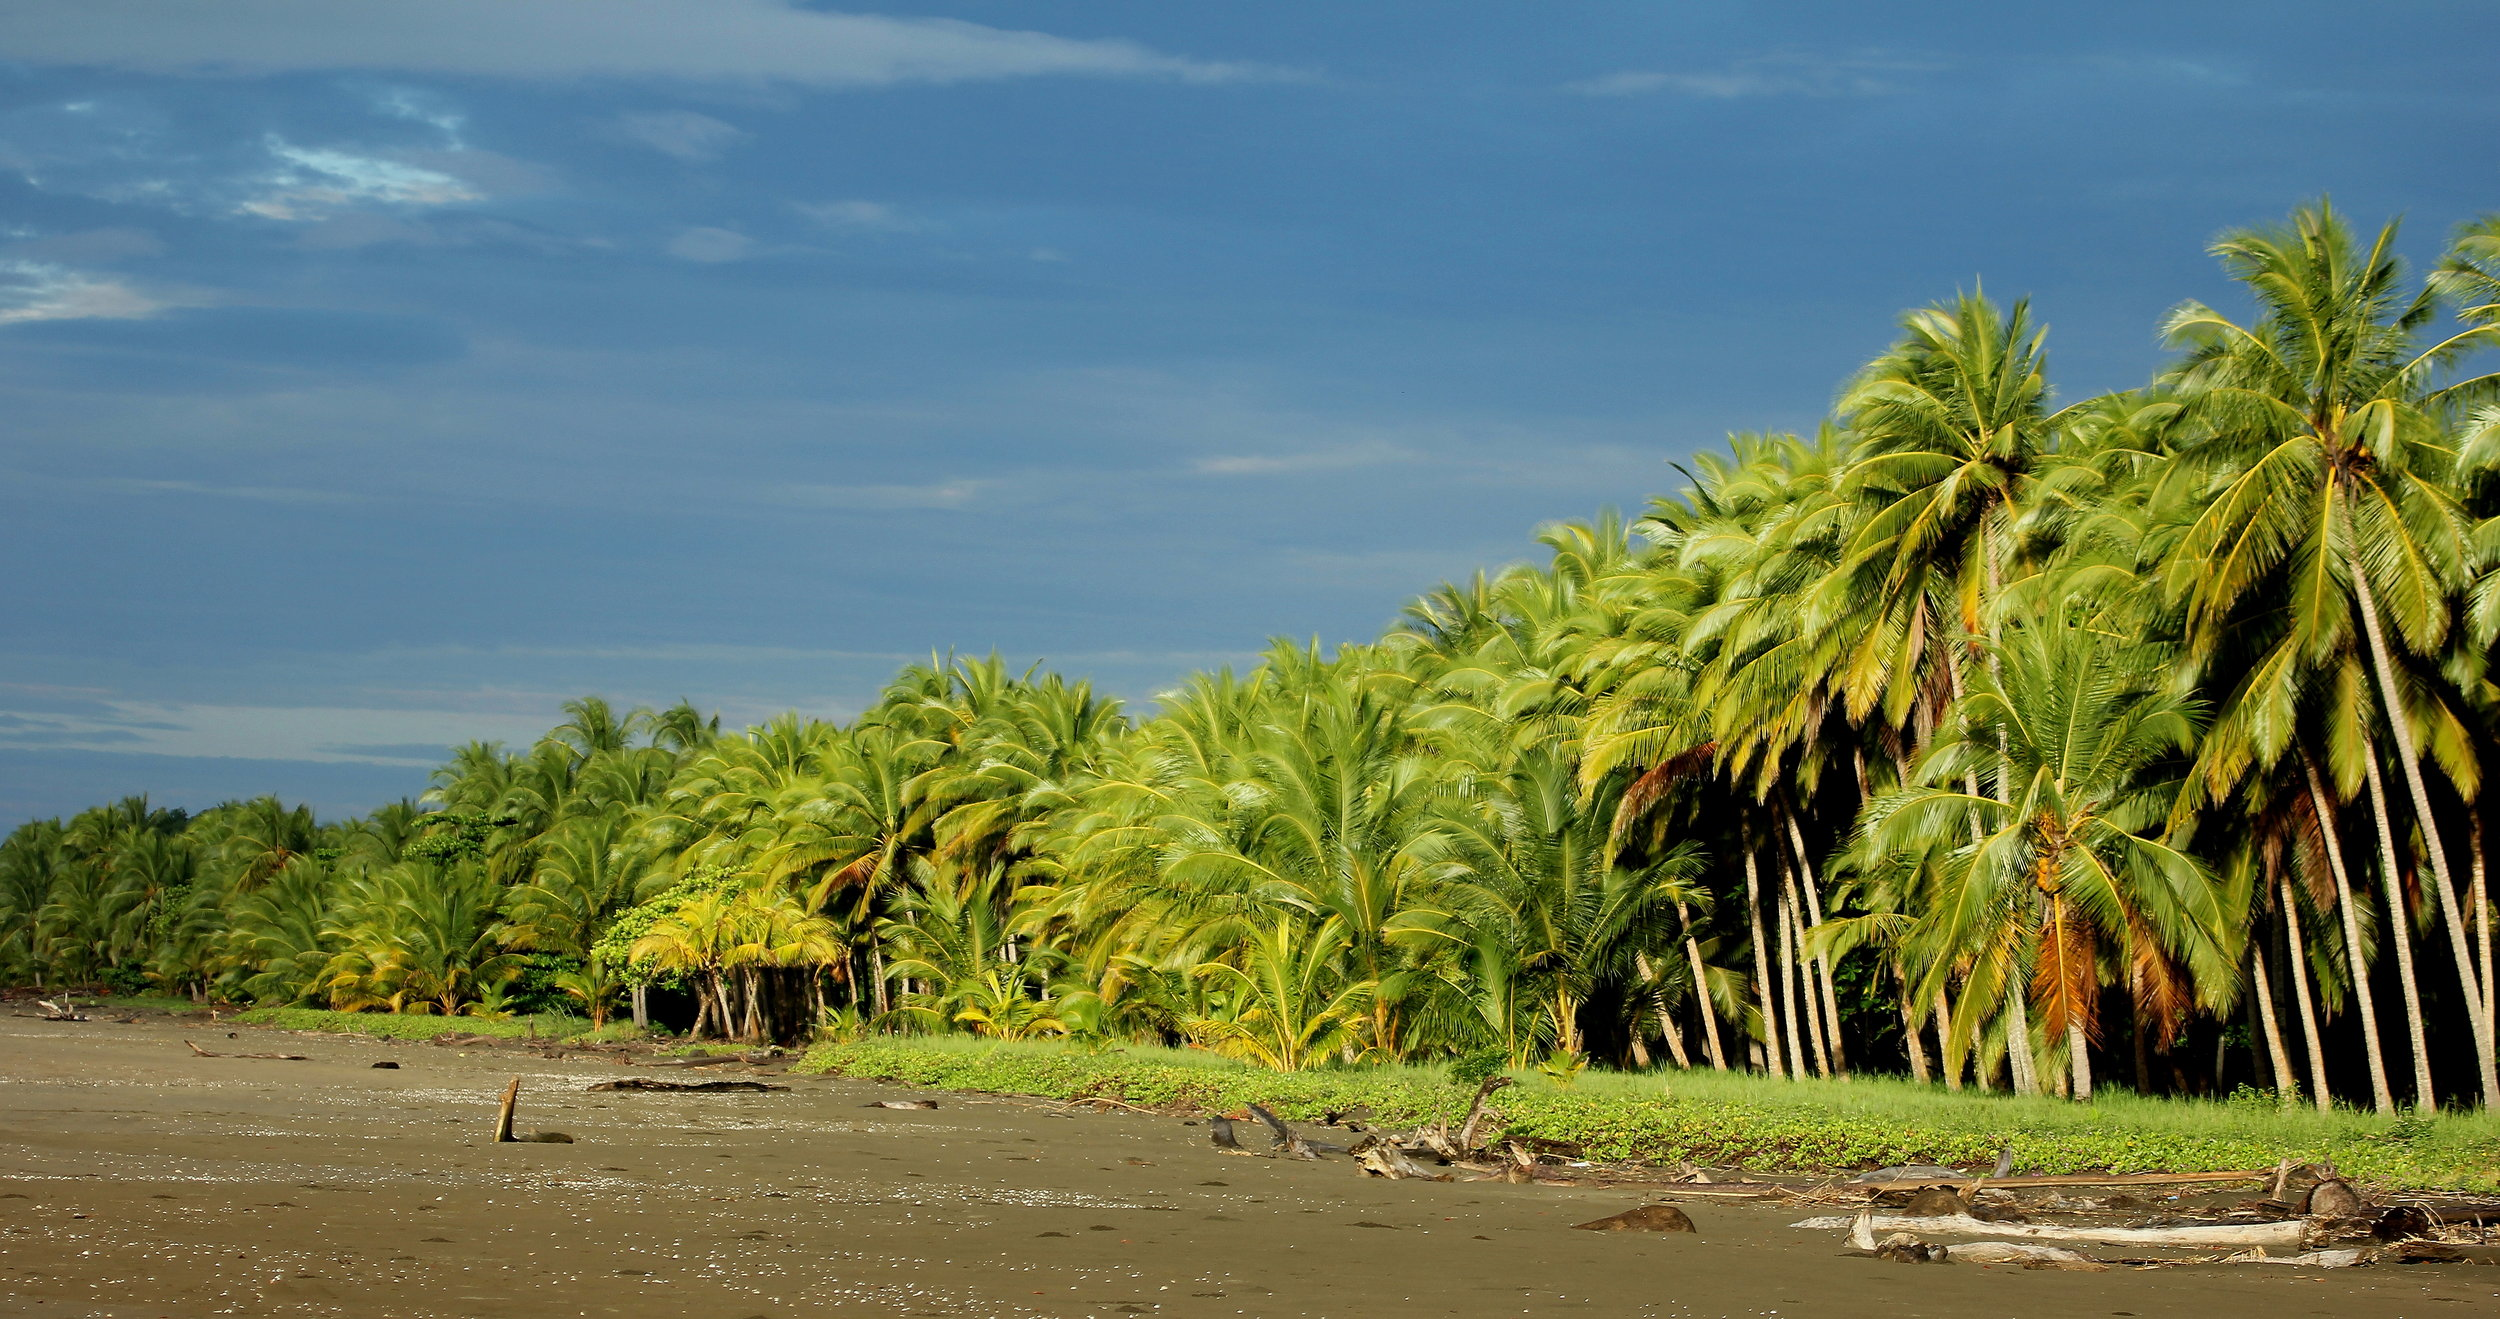 ADVENTURE TOURS - Get lost in the most exiting activities on this tropical land